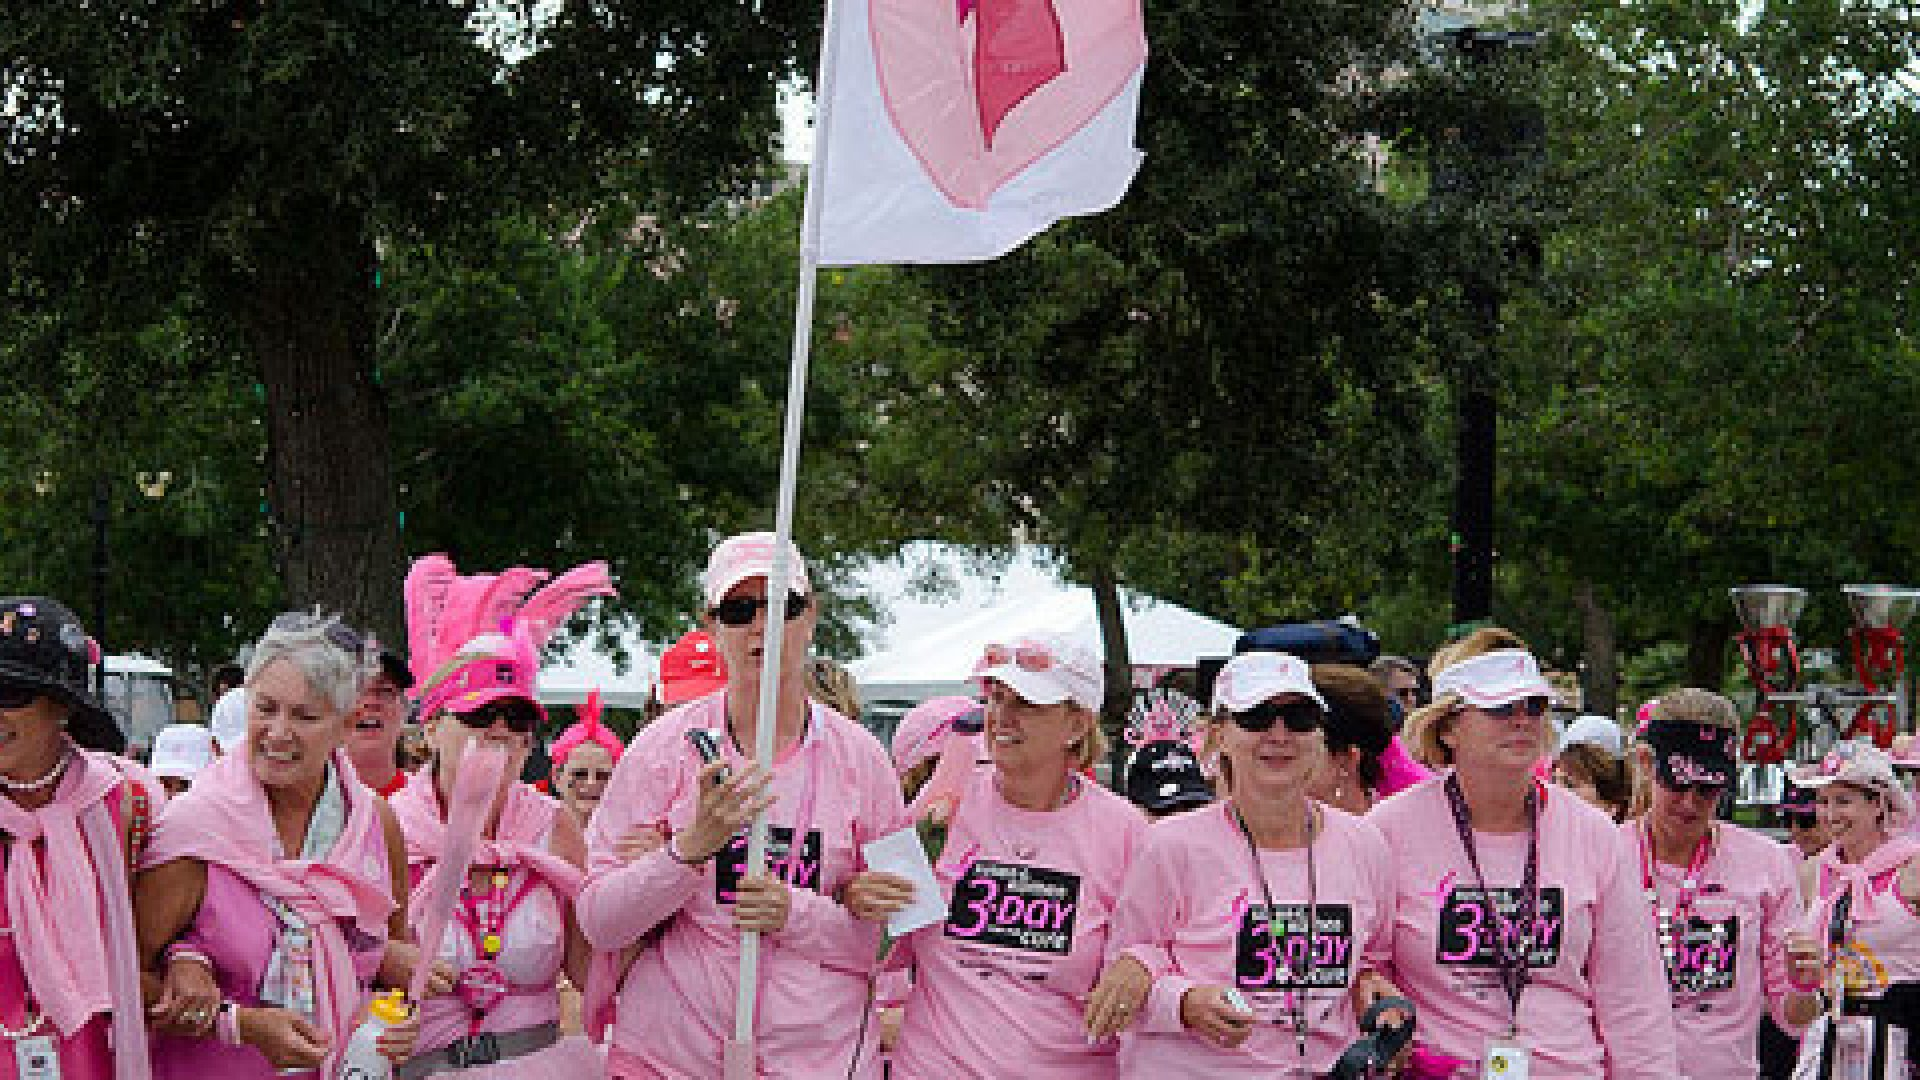 In suddenly severing its ties with Planned Parenthood, has Susan G. Komen for the Cure just lost some of its biggest supporters?